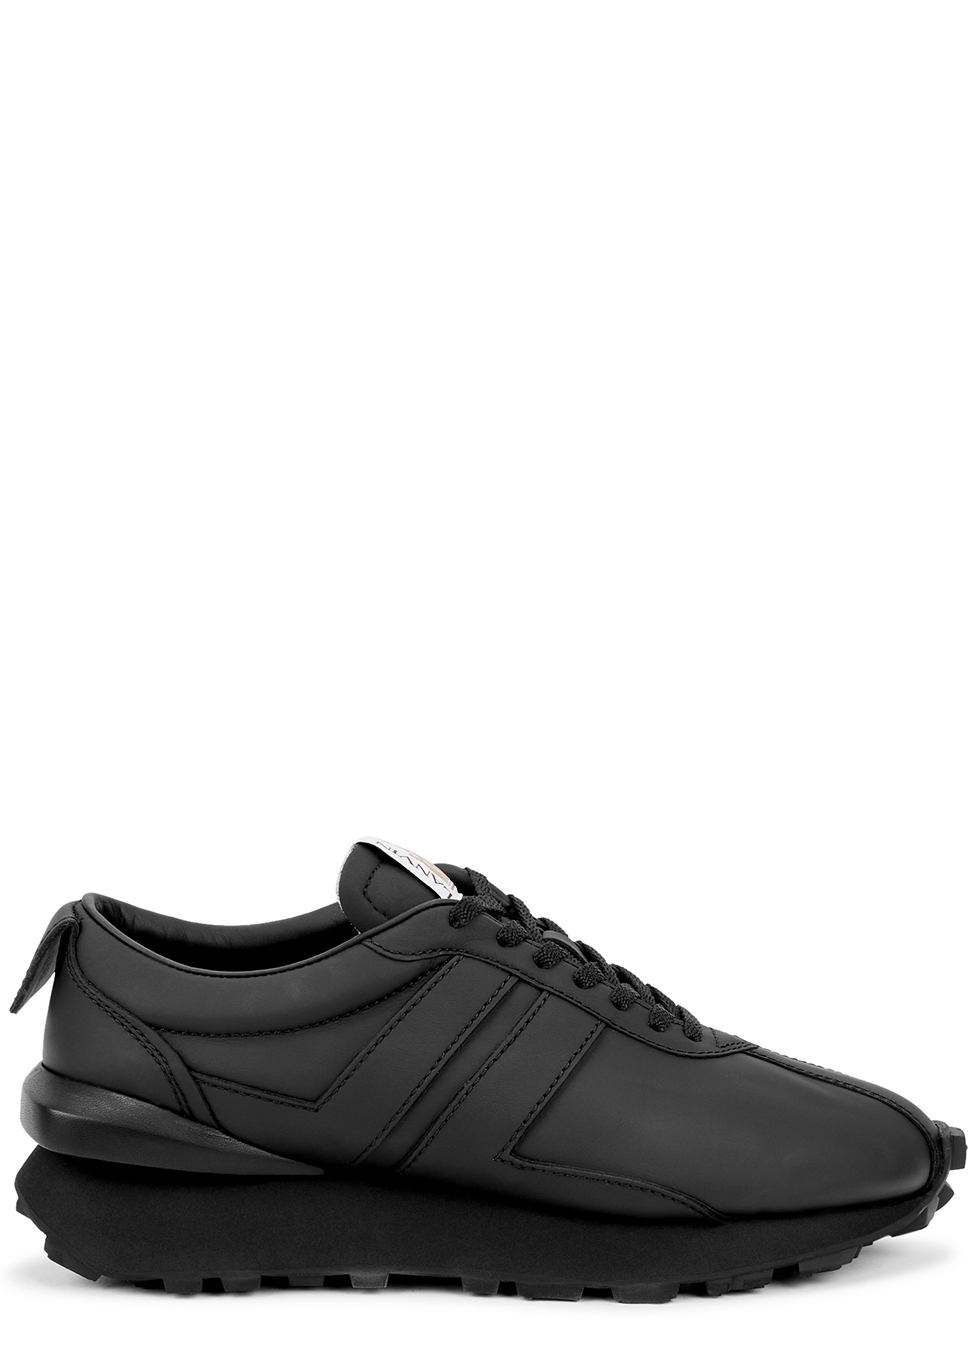 Bumpr black leather sneakers